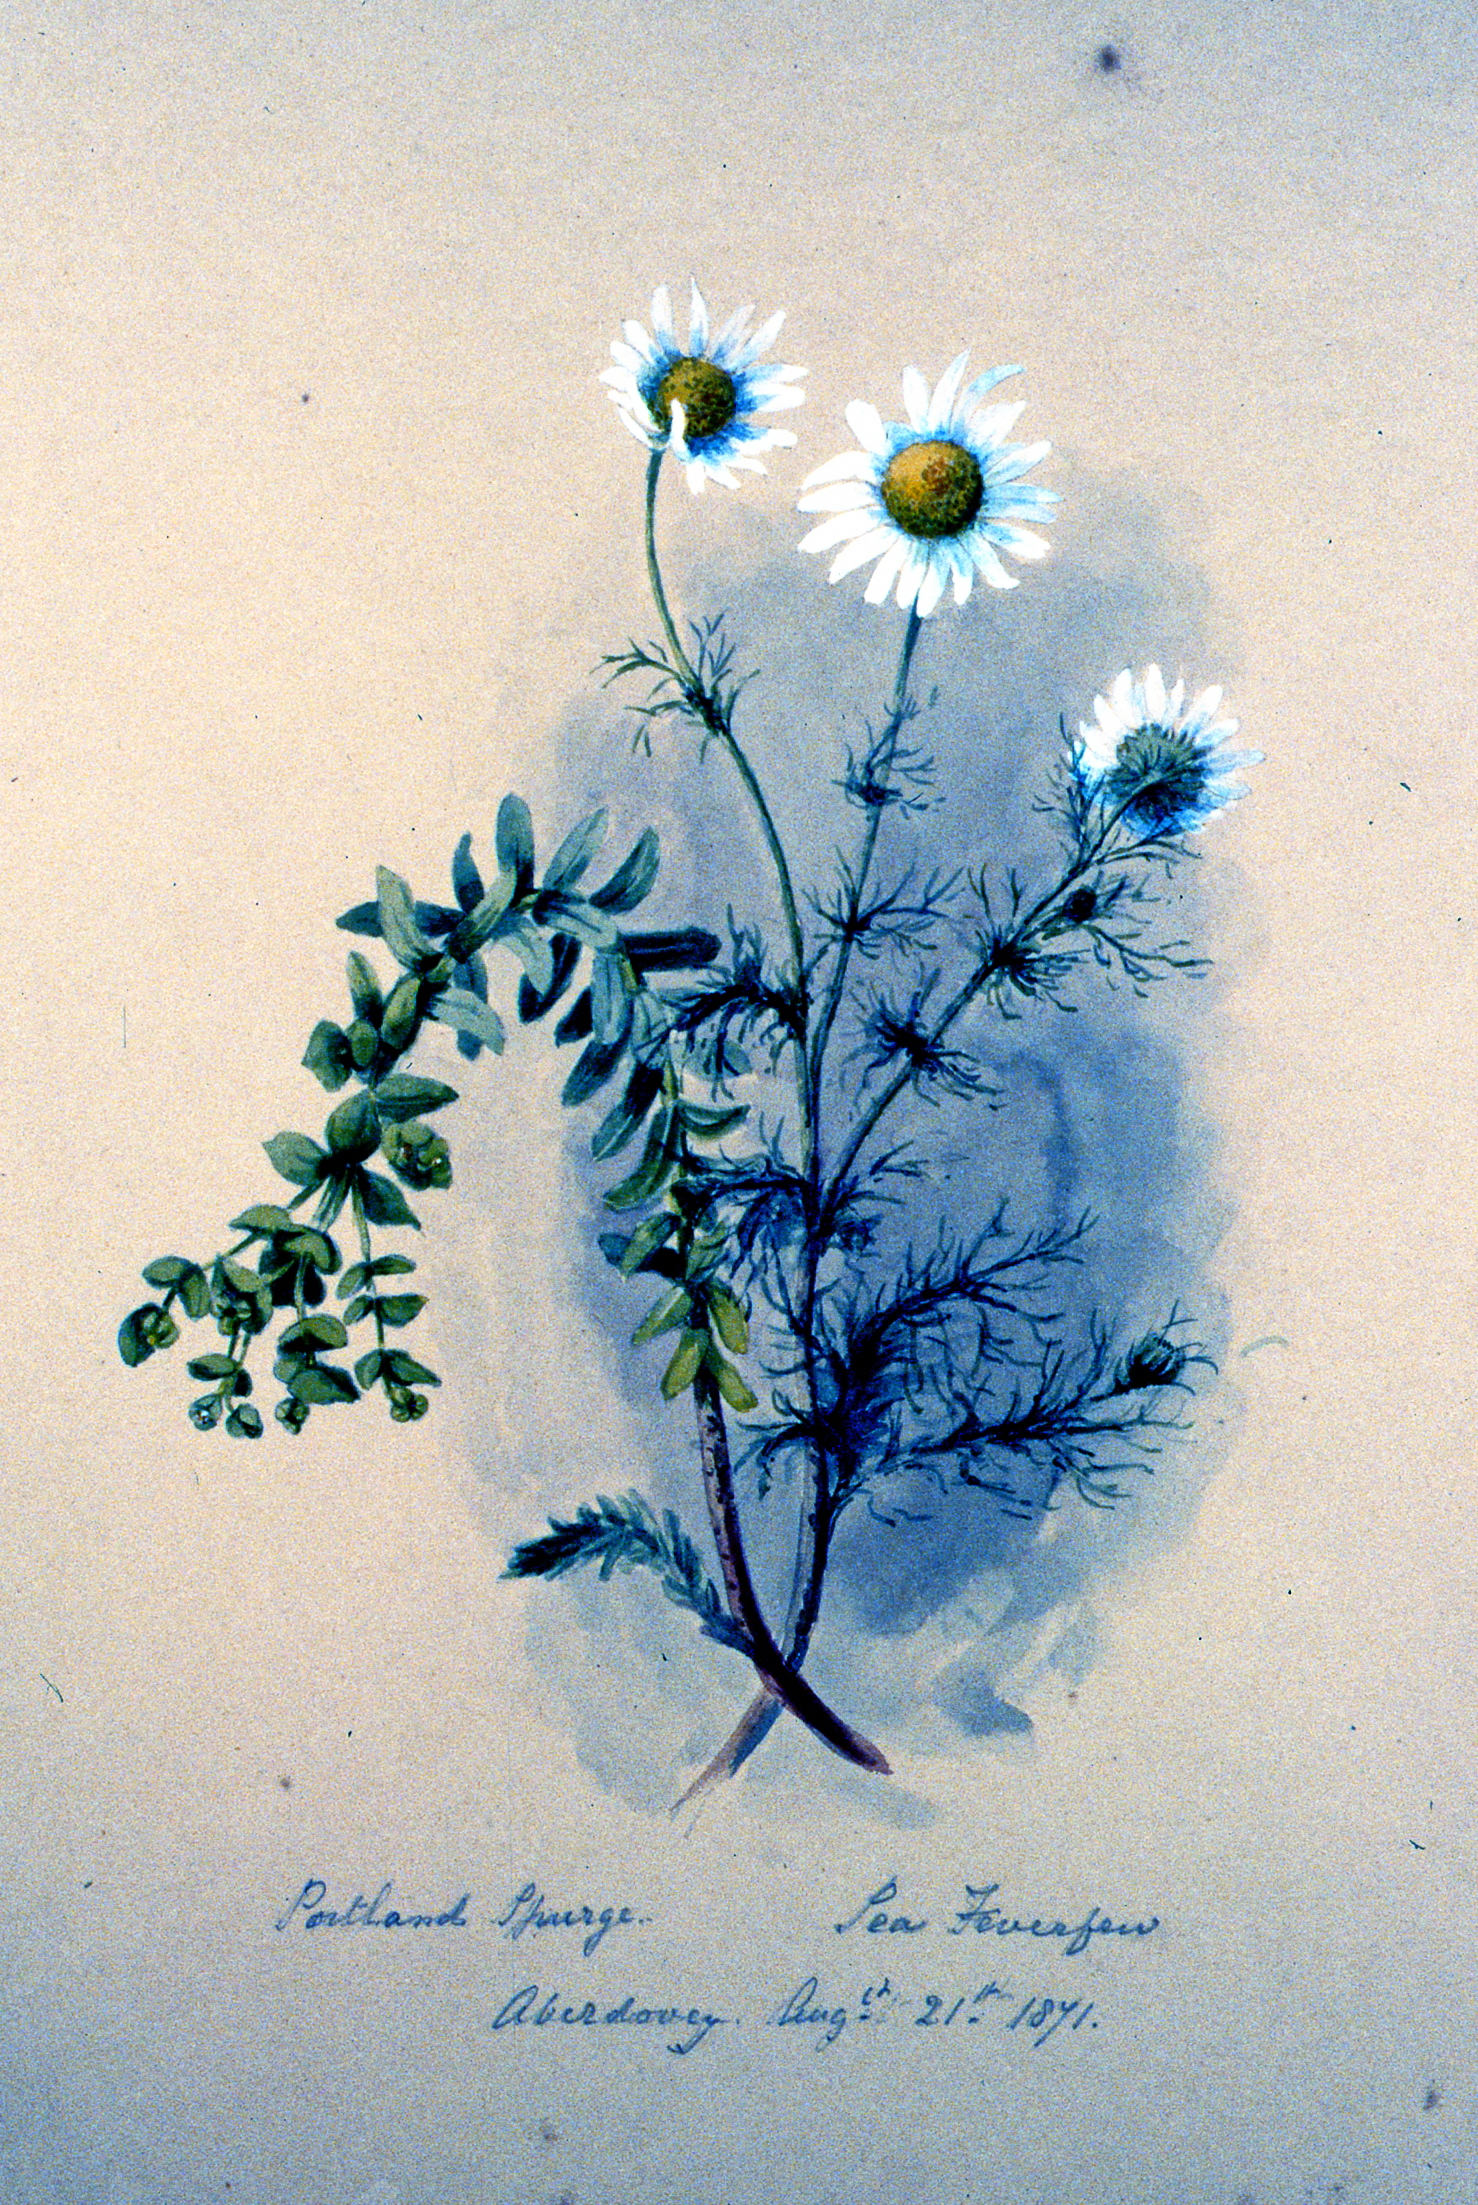 Portland Sparge - Pea Feverfew , 1871, Julia Bullock Webster, watercolour on paper, 35.5 x 25.8 cm, 1983.02.33. Gift of Mrs. Barbara Steel.